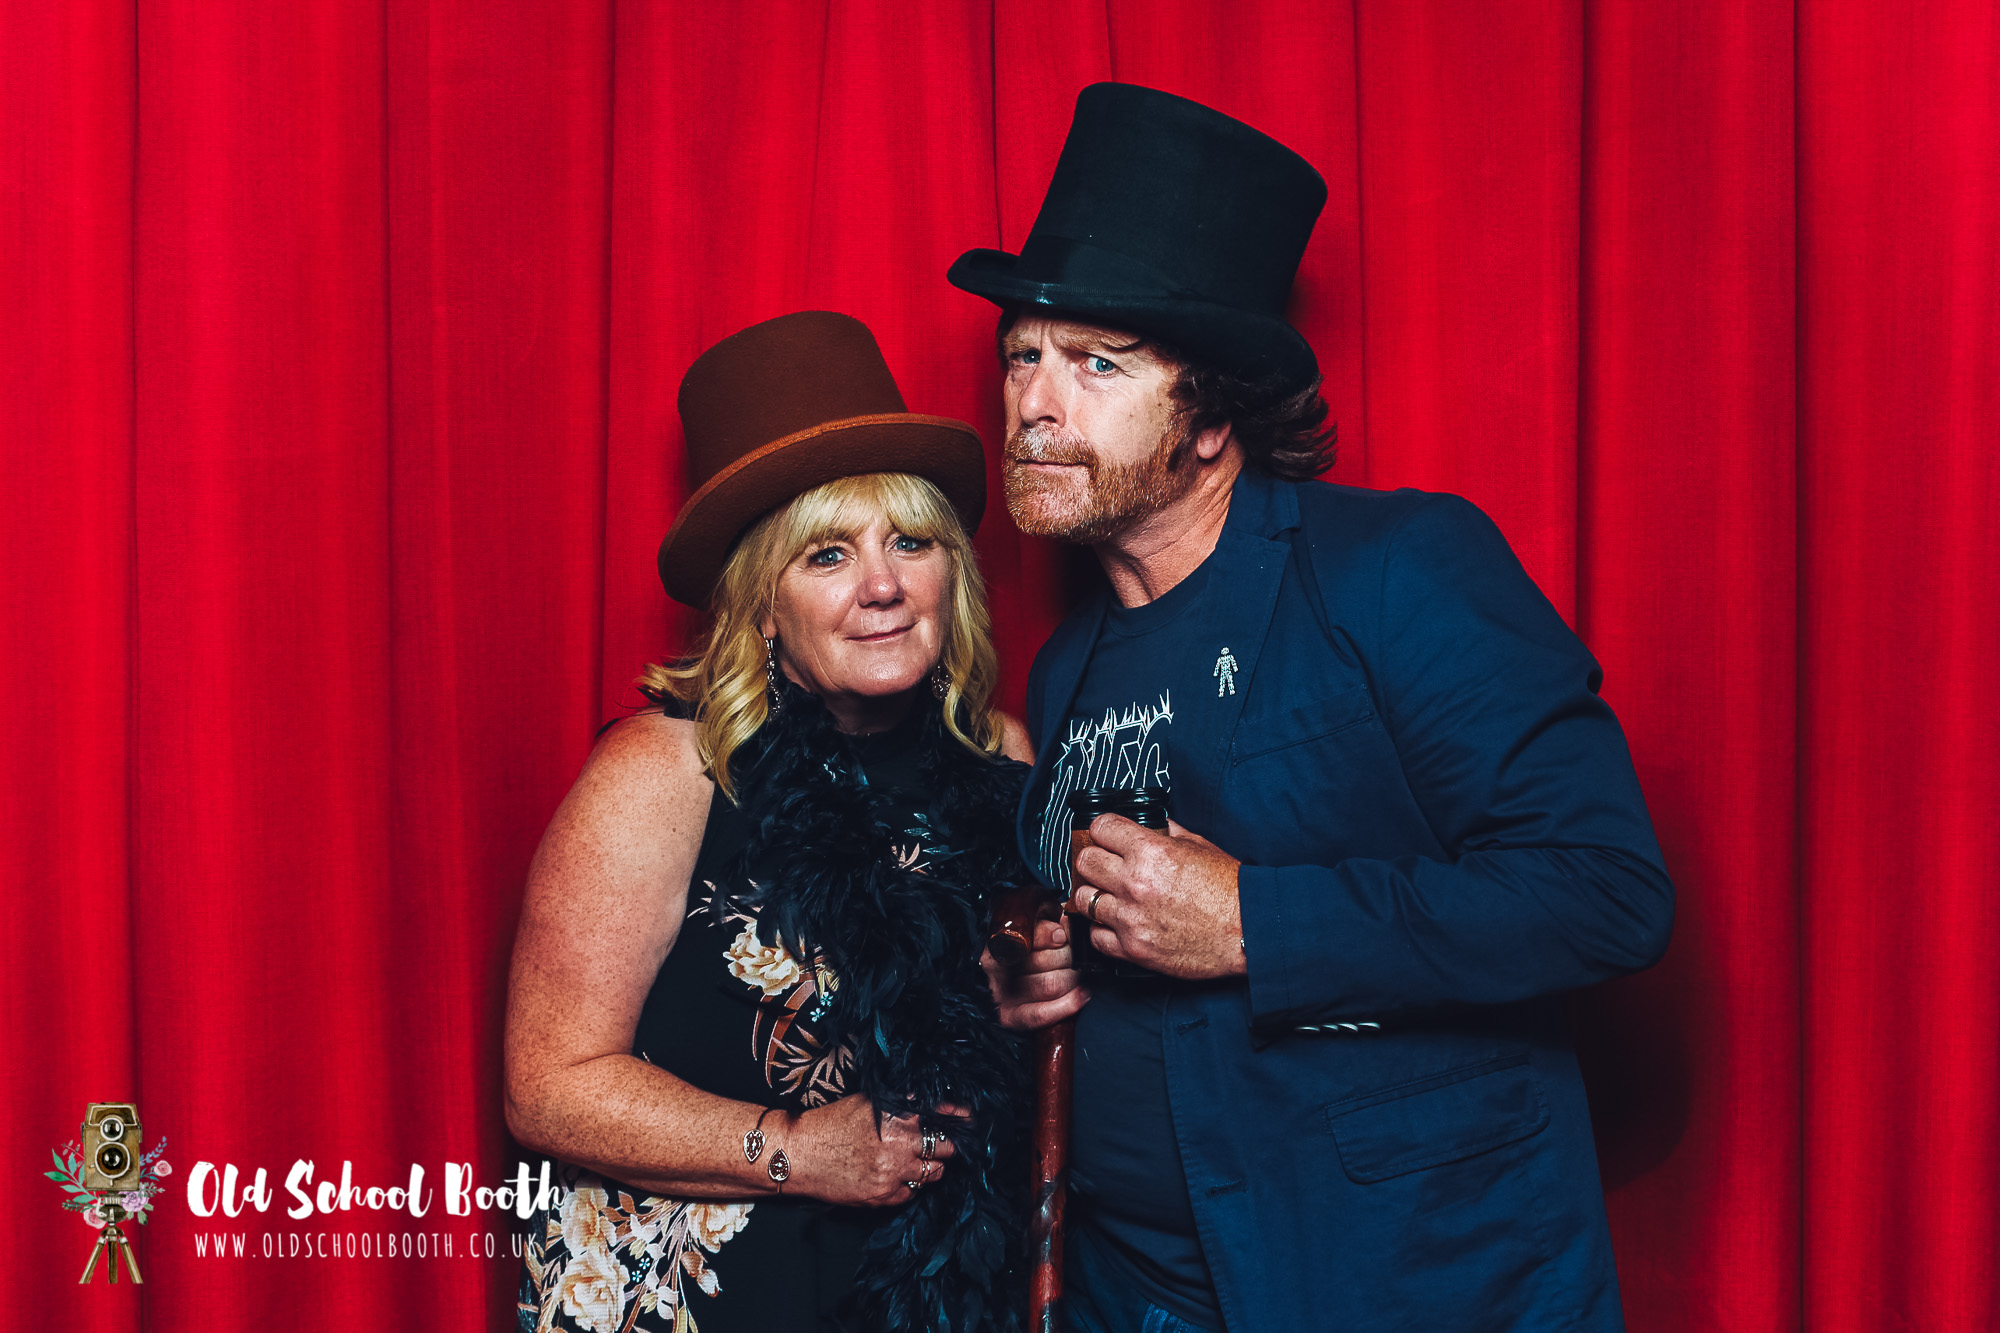 vintage photo booth hire nottinghamshire